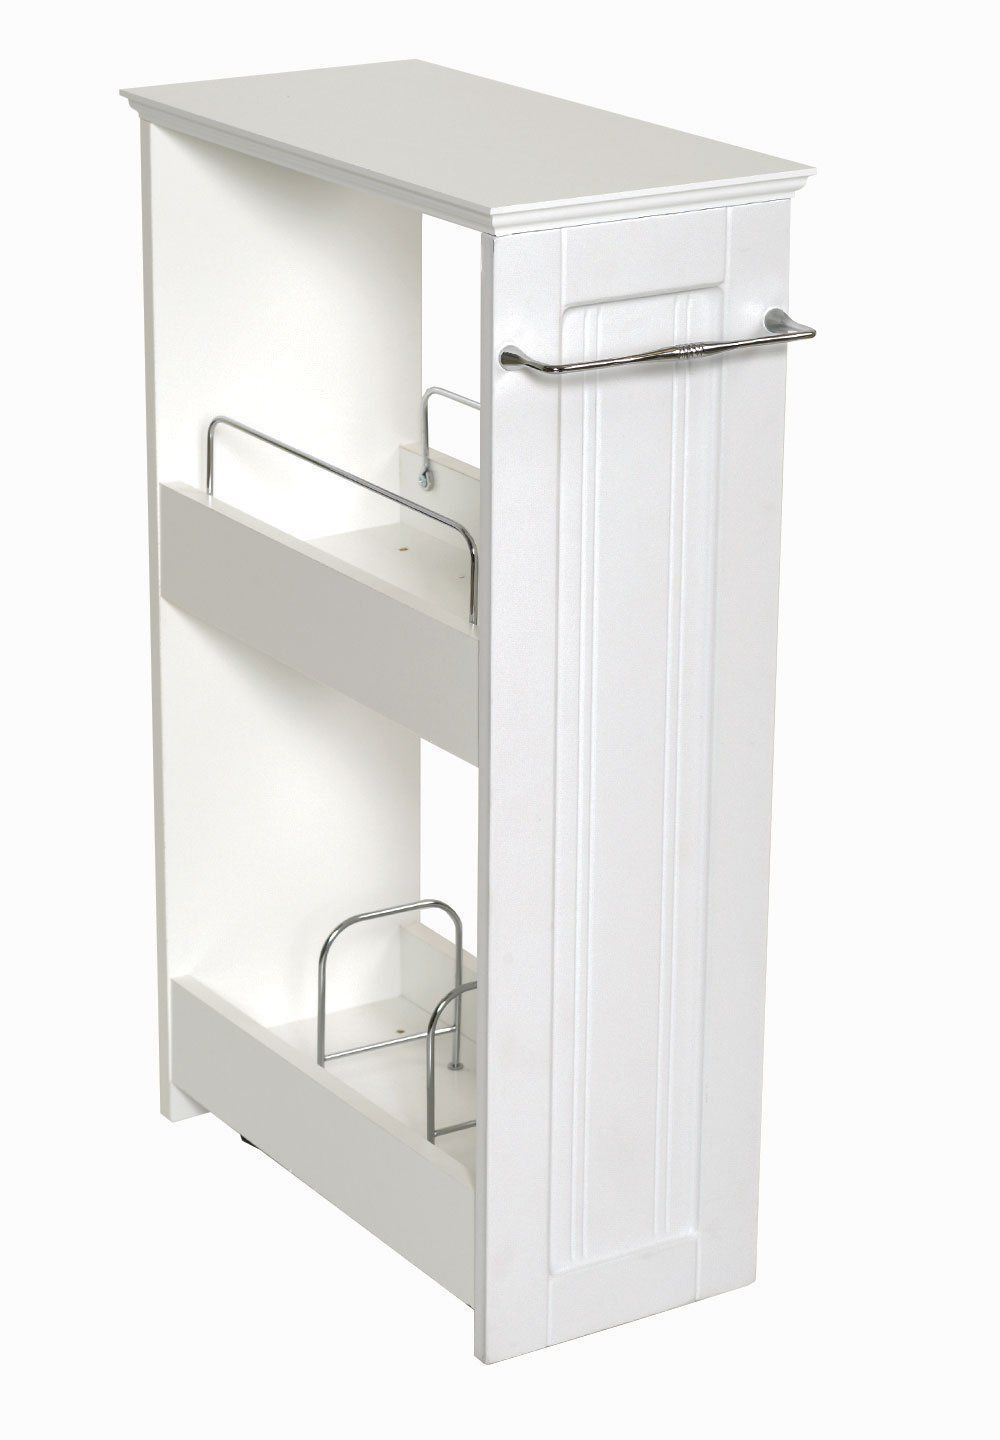 Details About Bathroom Floor Storage Rolling Cabinet intended for size 1000 X 1440